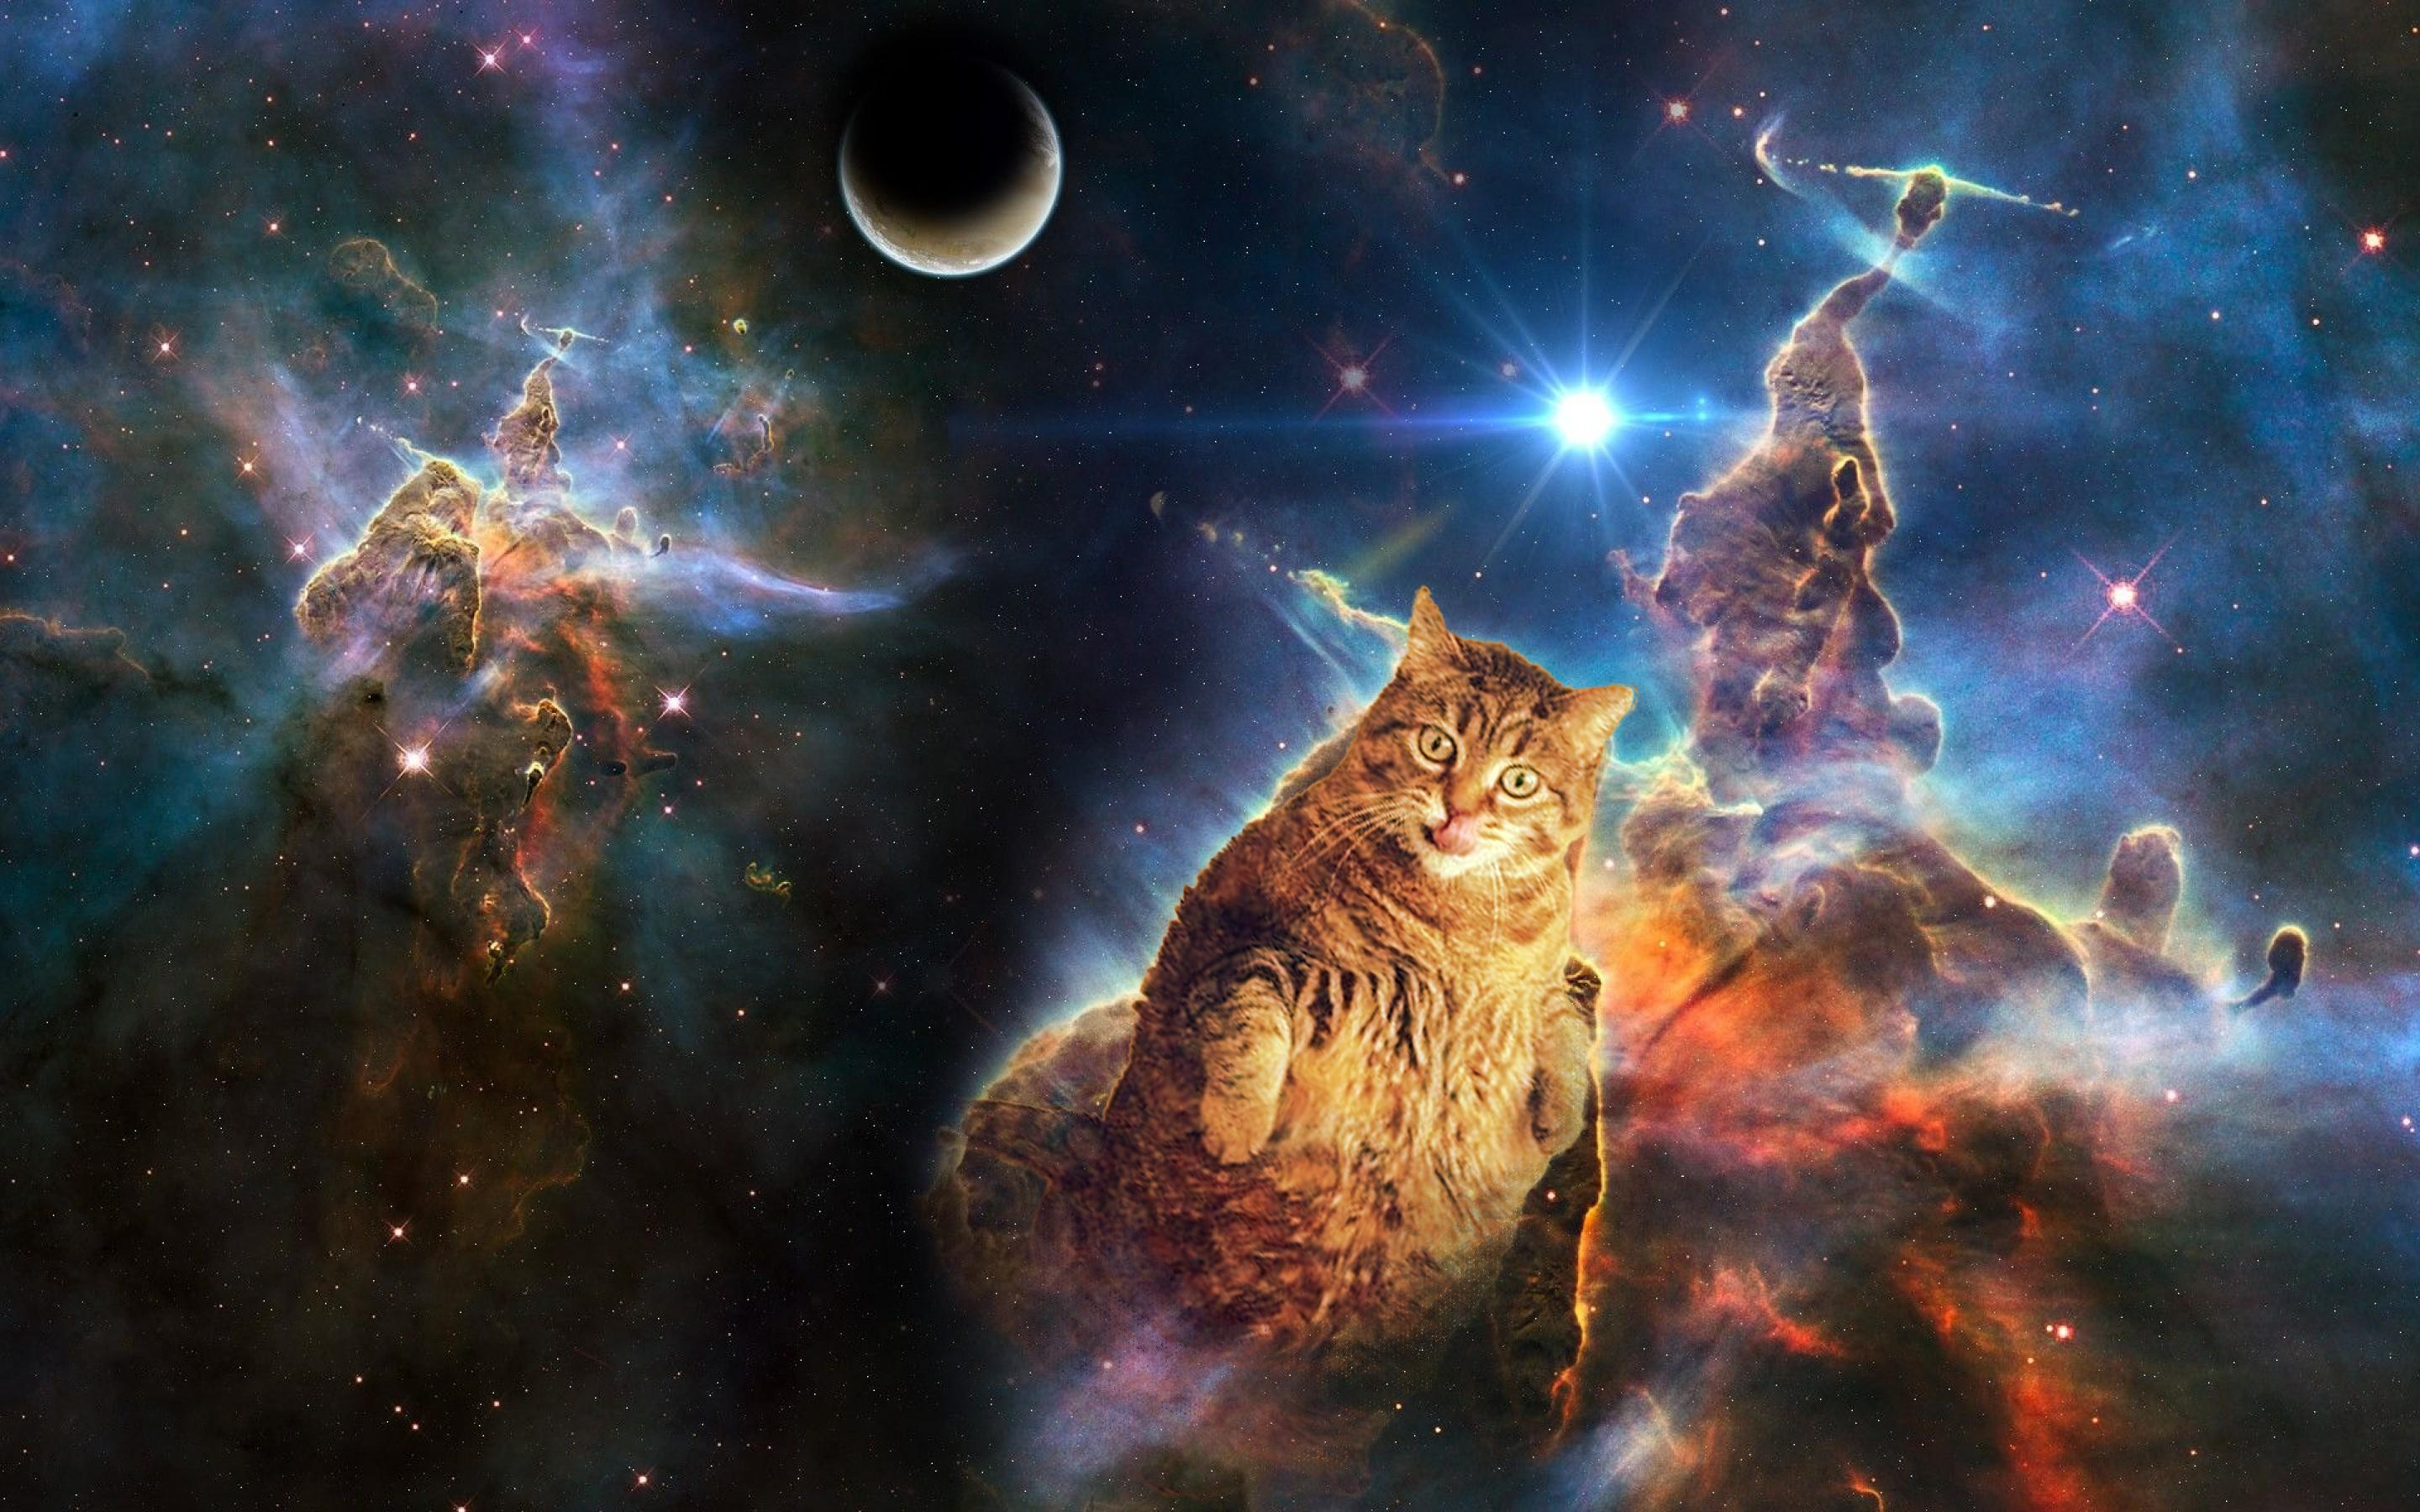 Space cat wallpaper dump   Album on Imgur 2880x1800